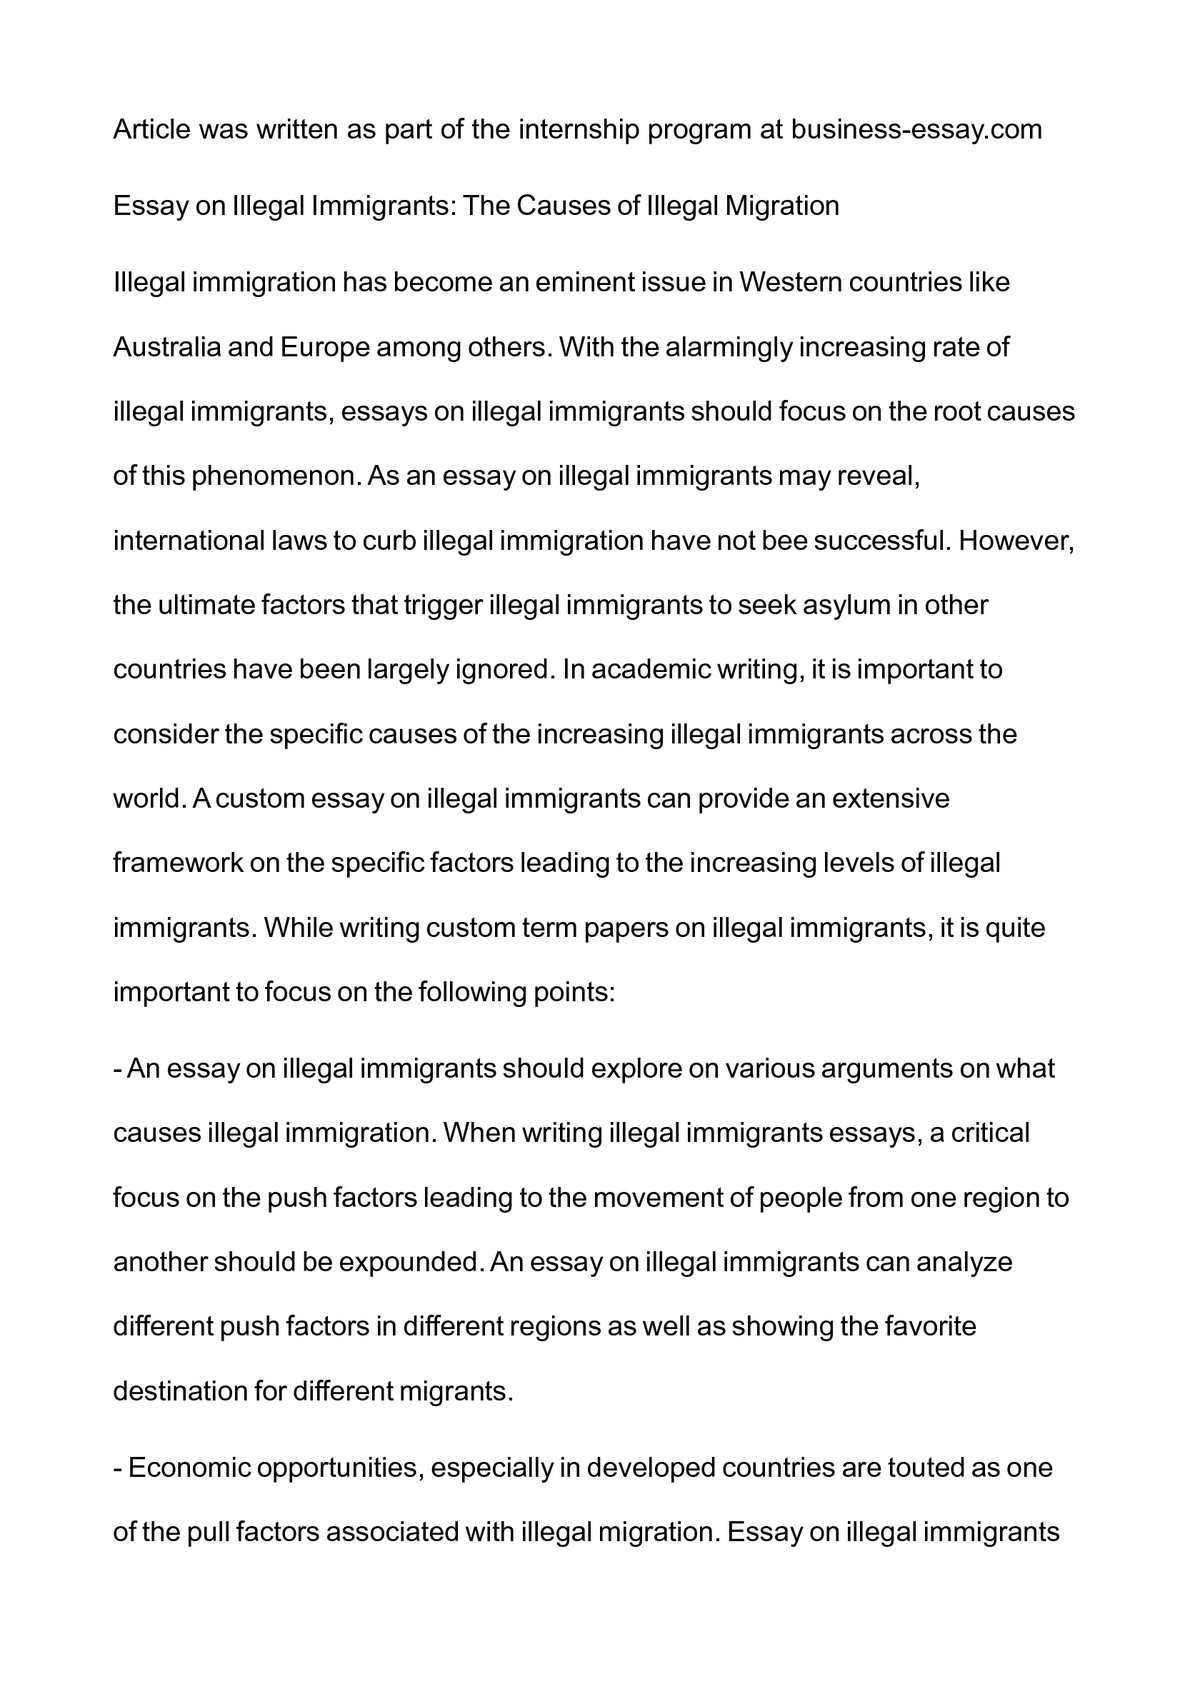 001 Essay Example Illegal Immigration Argumentative On P Against Thesis Pro Outline Stunning Topics Paper Title Full